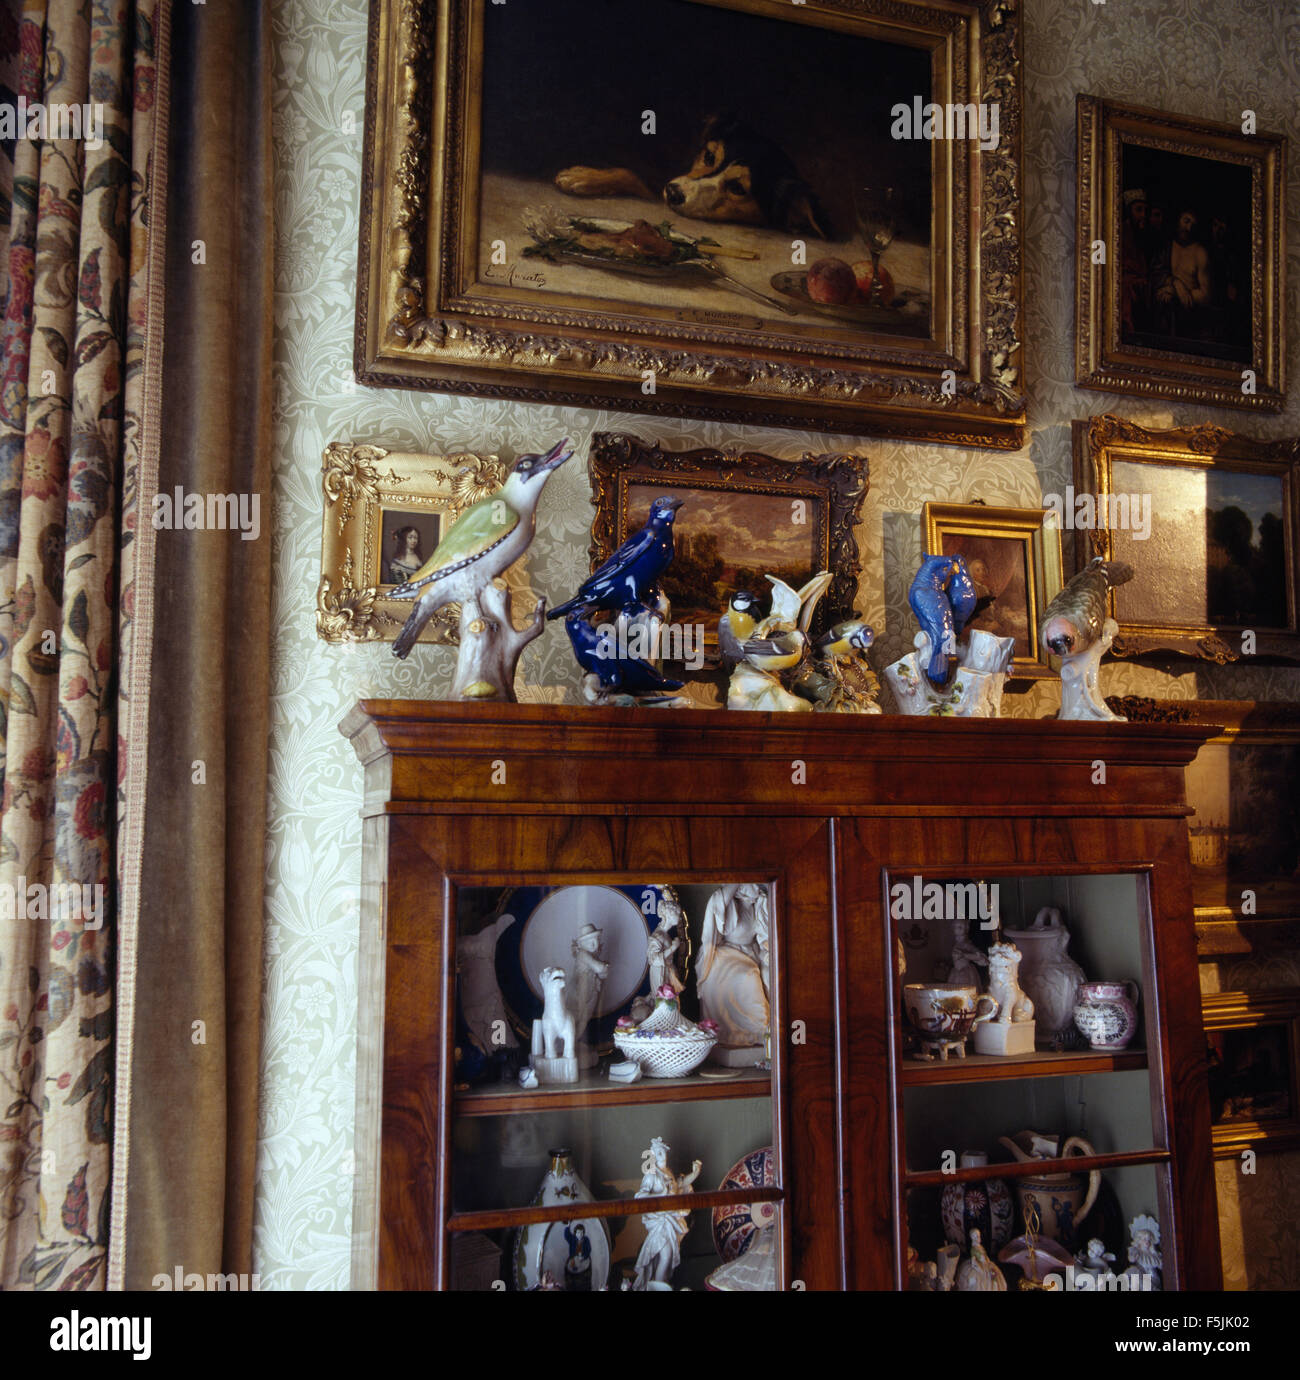 Paintings On Wall Above Antique Glass Front Cabinet With A Collection Of  Antique China Figurines And Ornaments